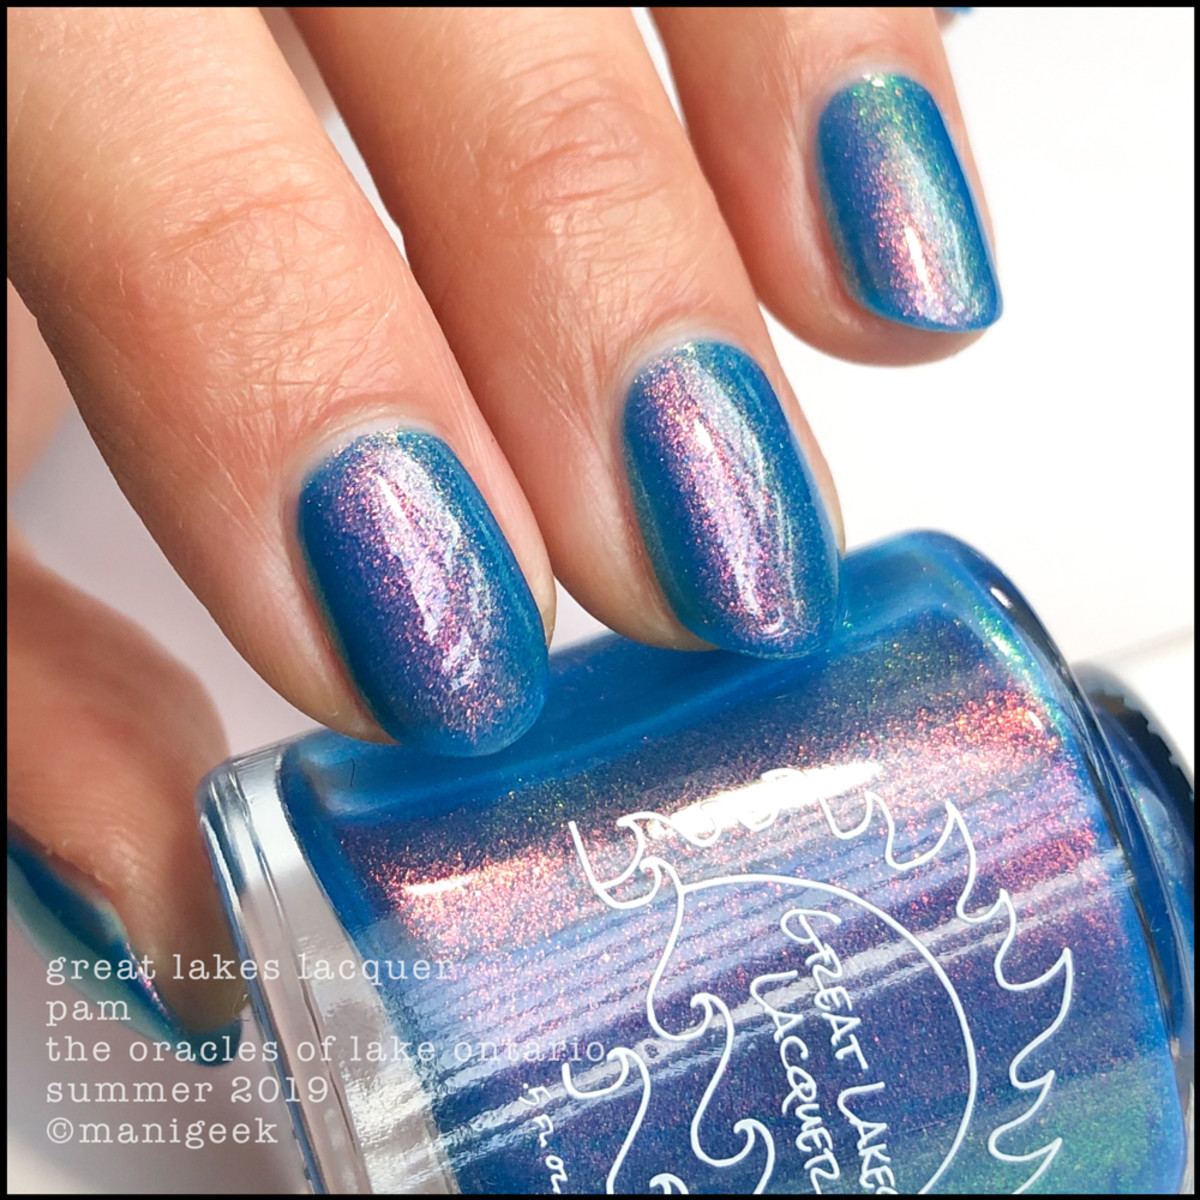 Great Lakes Lacquer Oracles of Lake Ontario Pam - LE IEC 2019 1